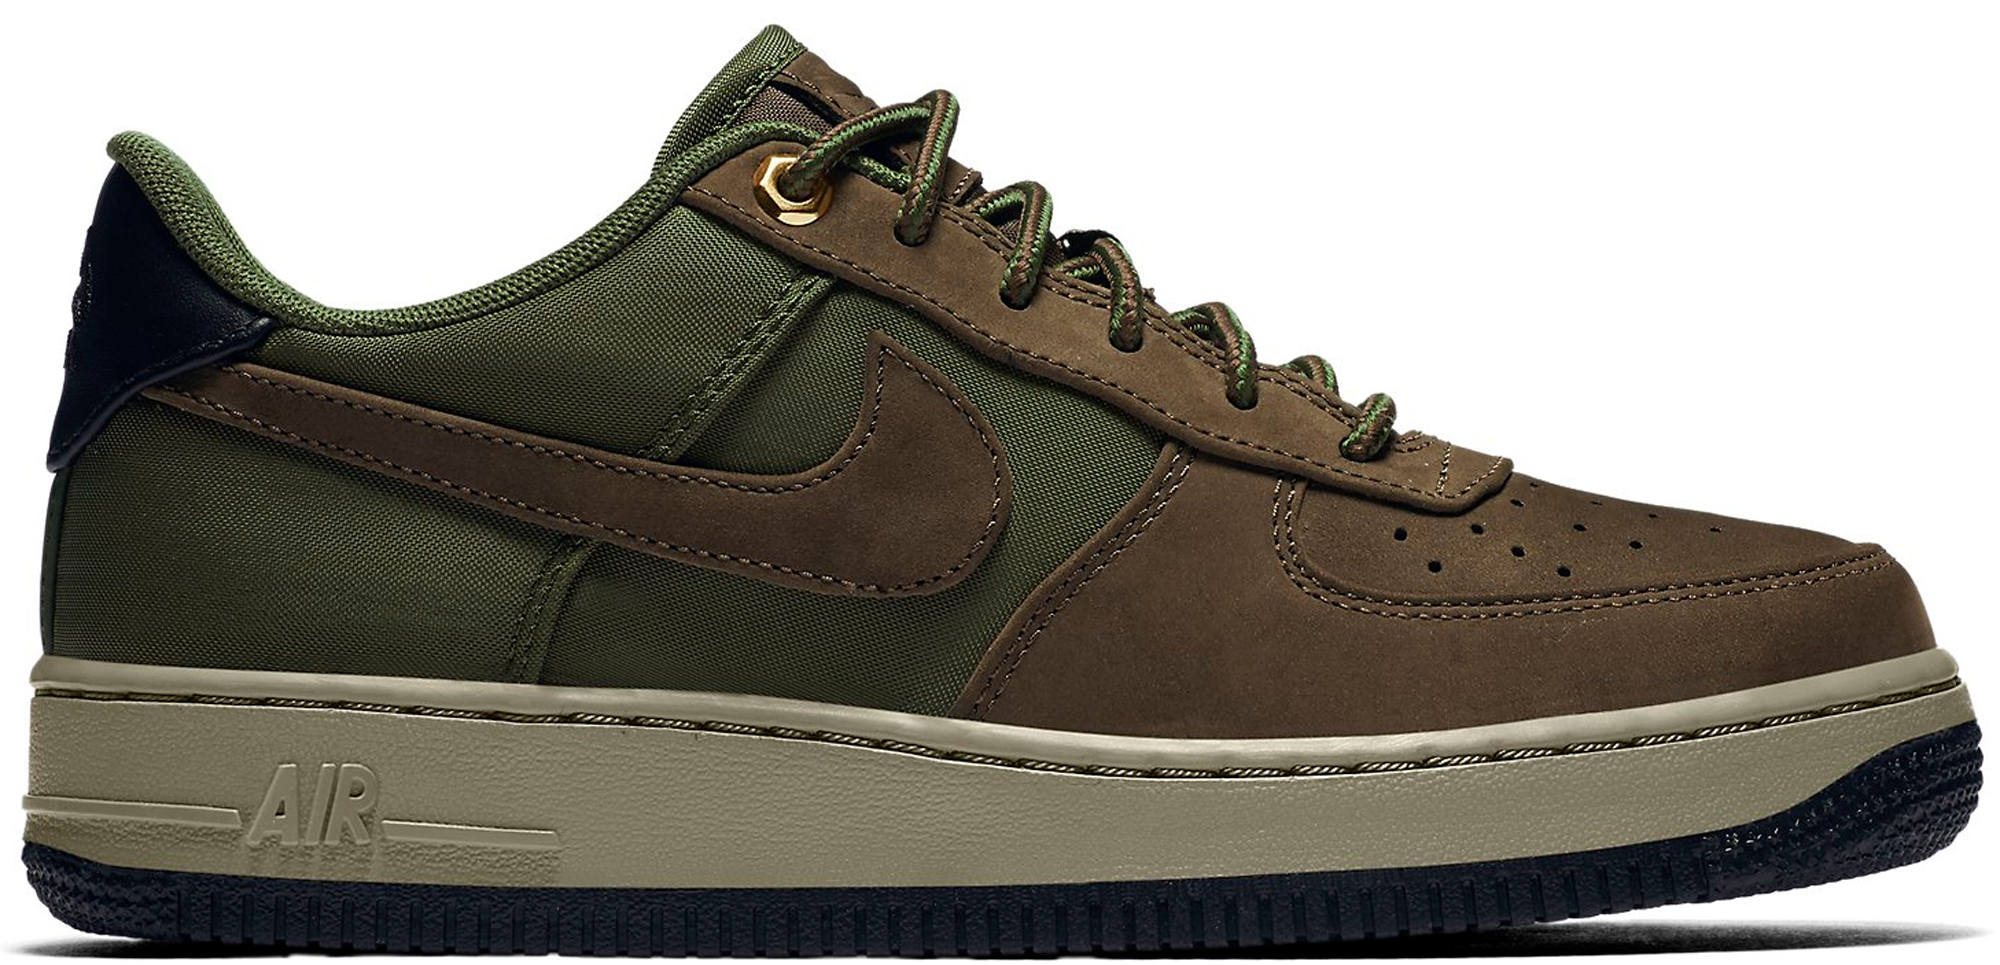 Air Force 1 Low Premier Beef and Broccoli (GS)